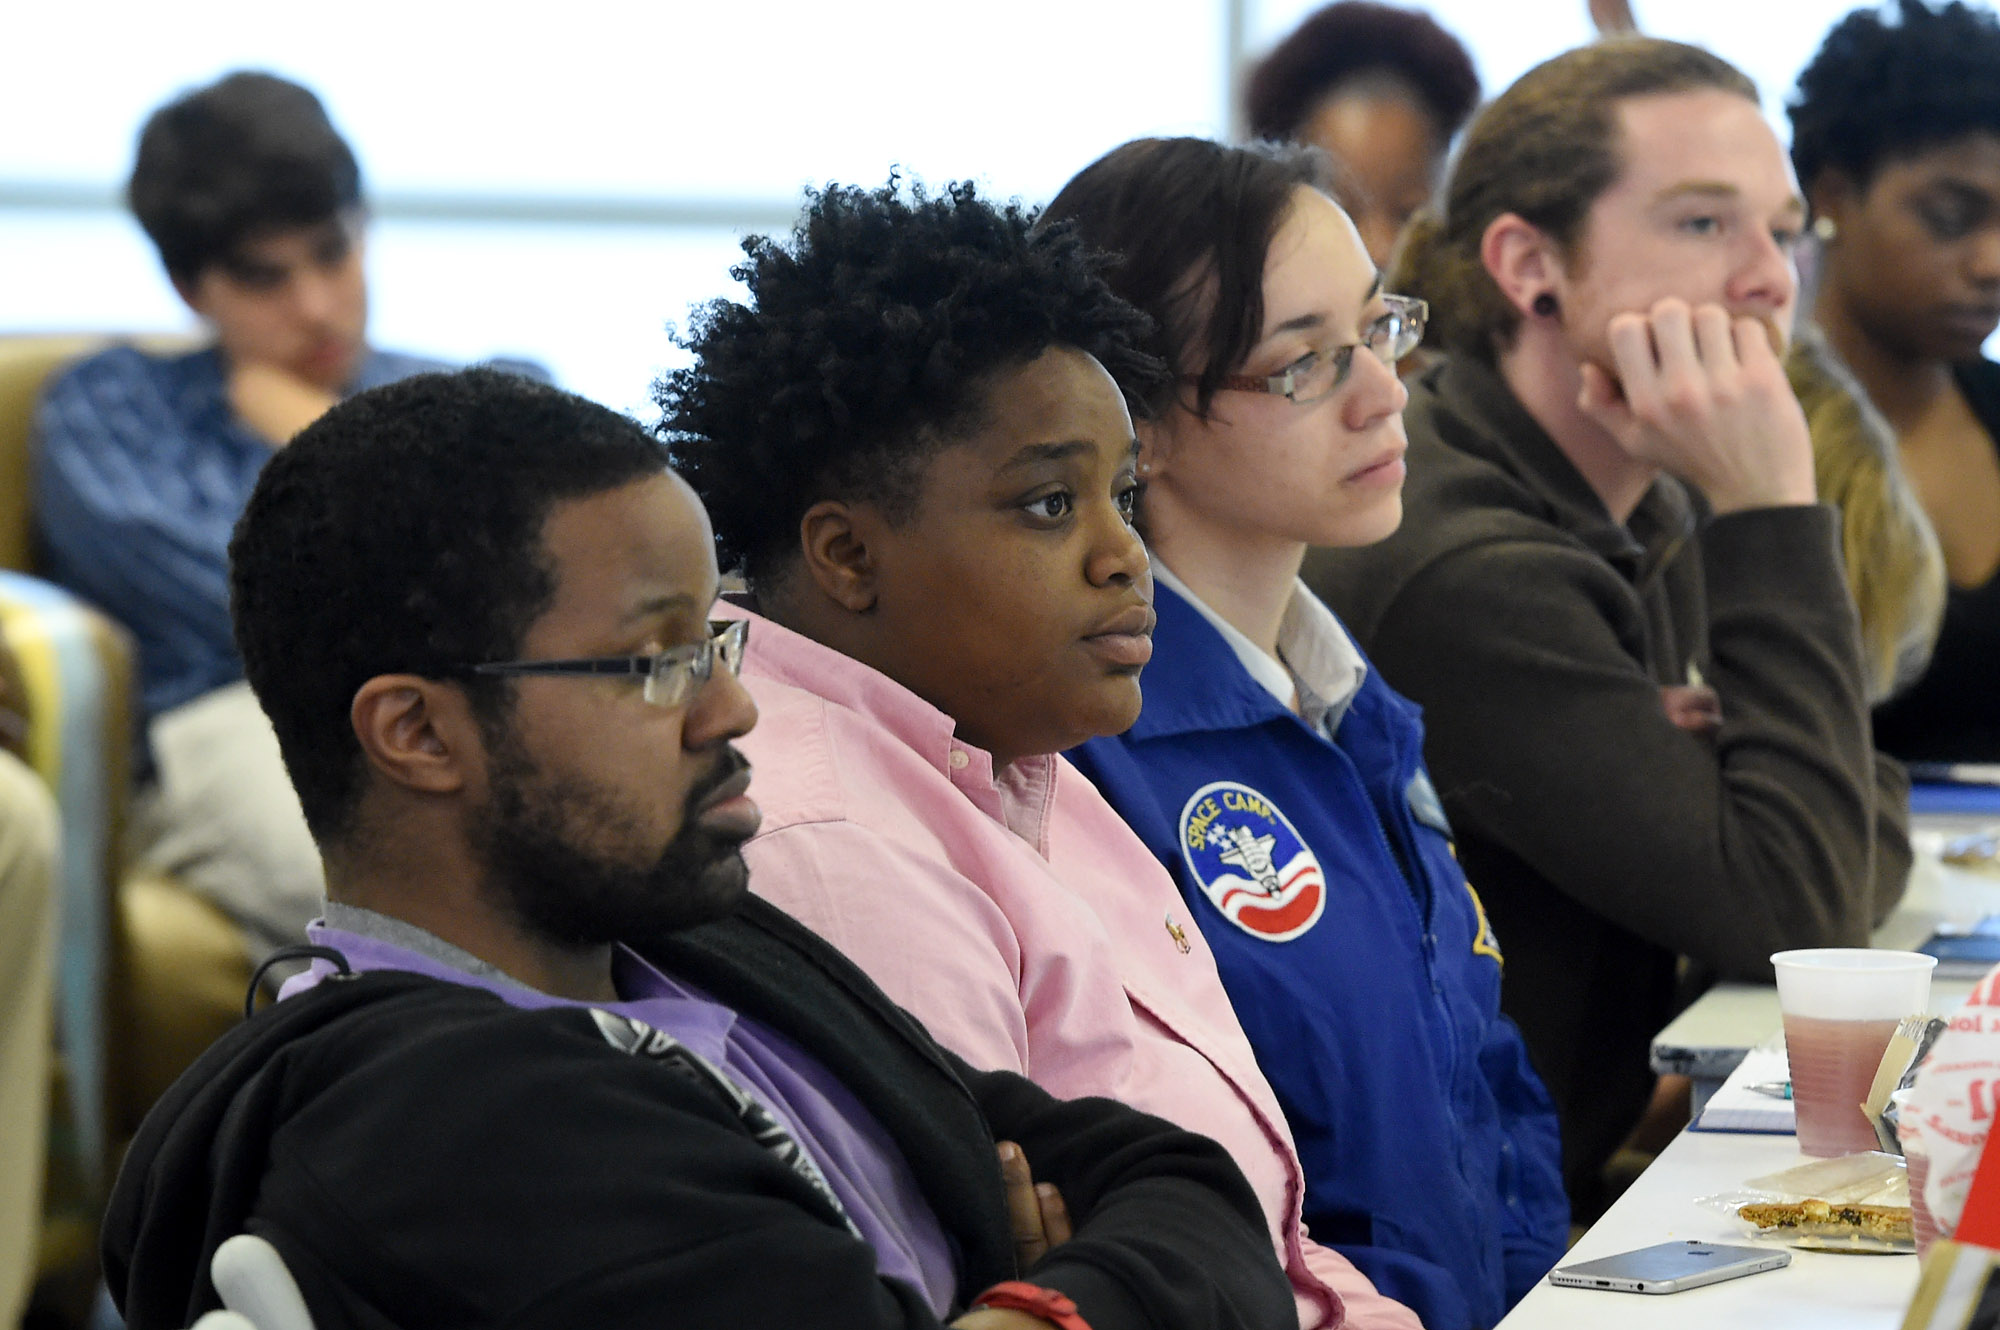 Students listen during a discussion about financial literacy as part of a partnership program to help students earn CompTIA A+ certification needed for entry-level jobs in the IT field at the Innovation Depot in Birmingham, Ala., Friday, Feb. 17, 2017. (Mark Almond, for The Birmingham Times)